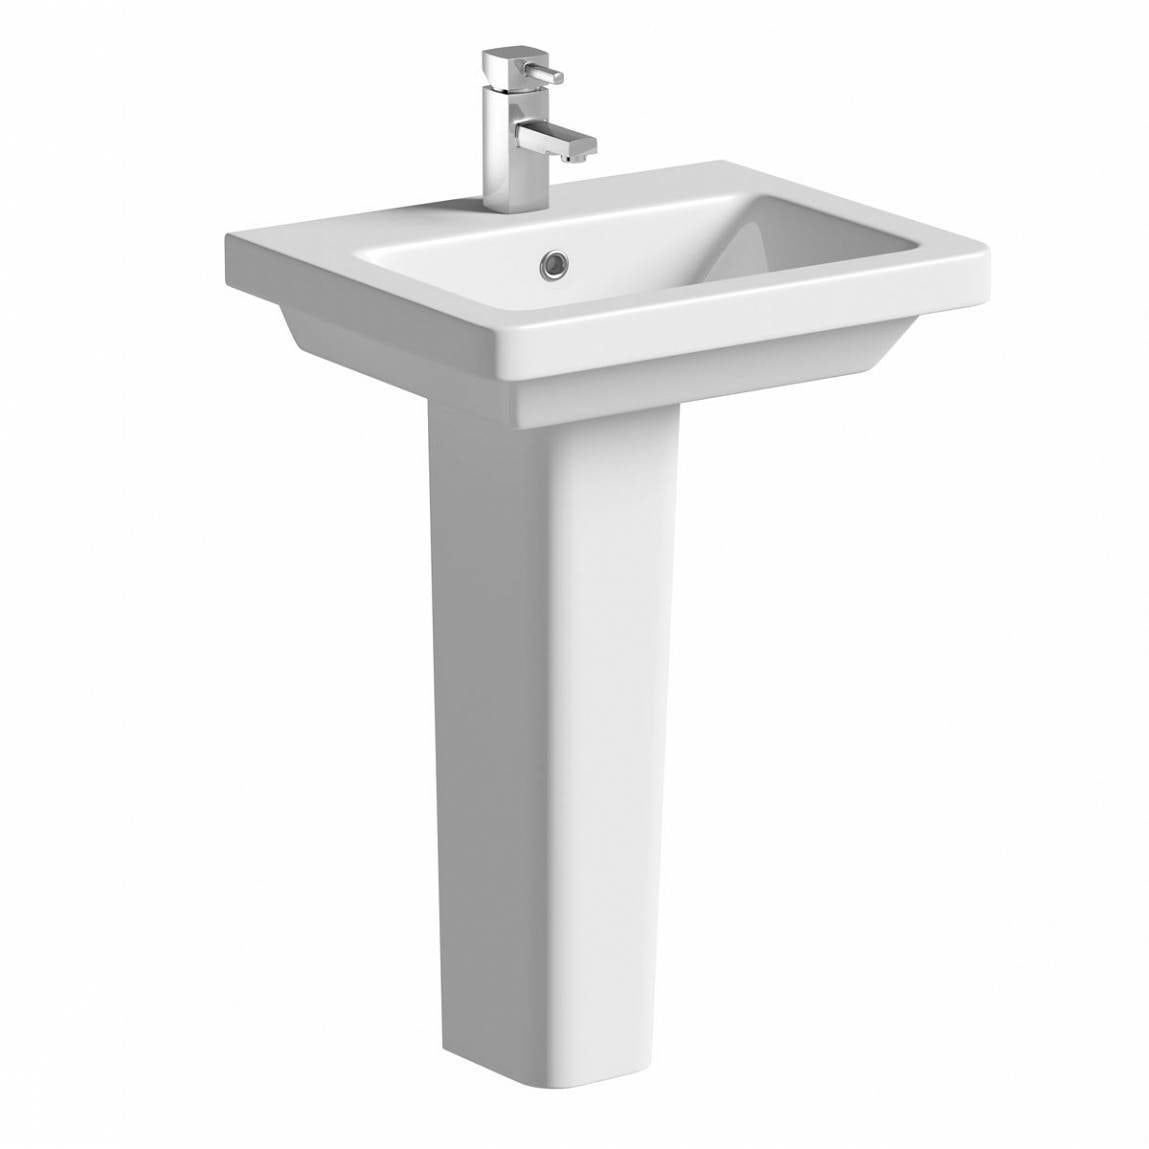 Mode Cooper 1 tap hole full pedestal basin 550mm